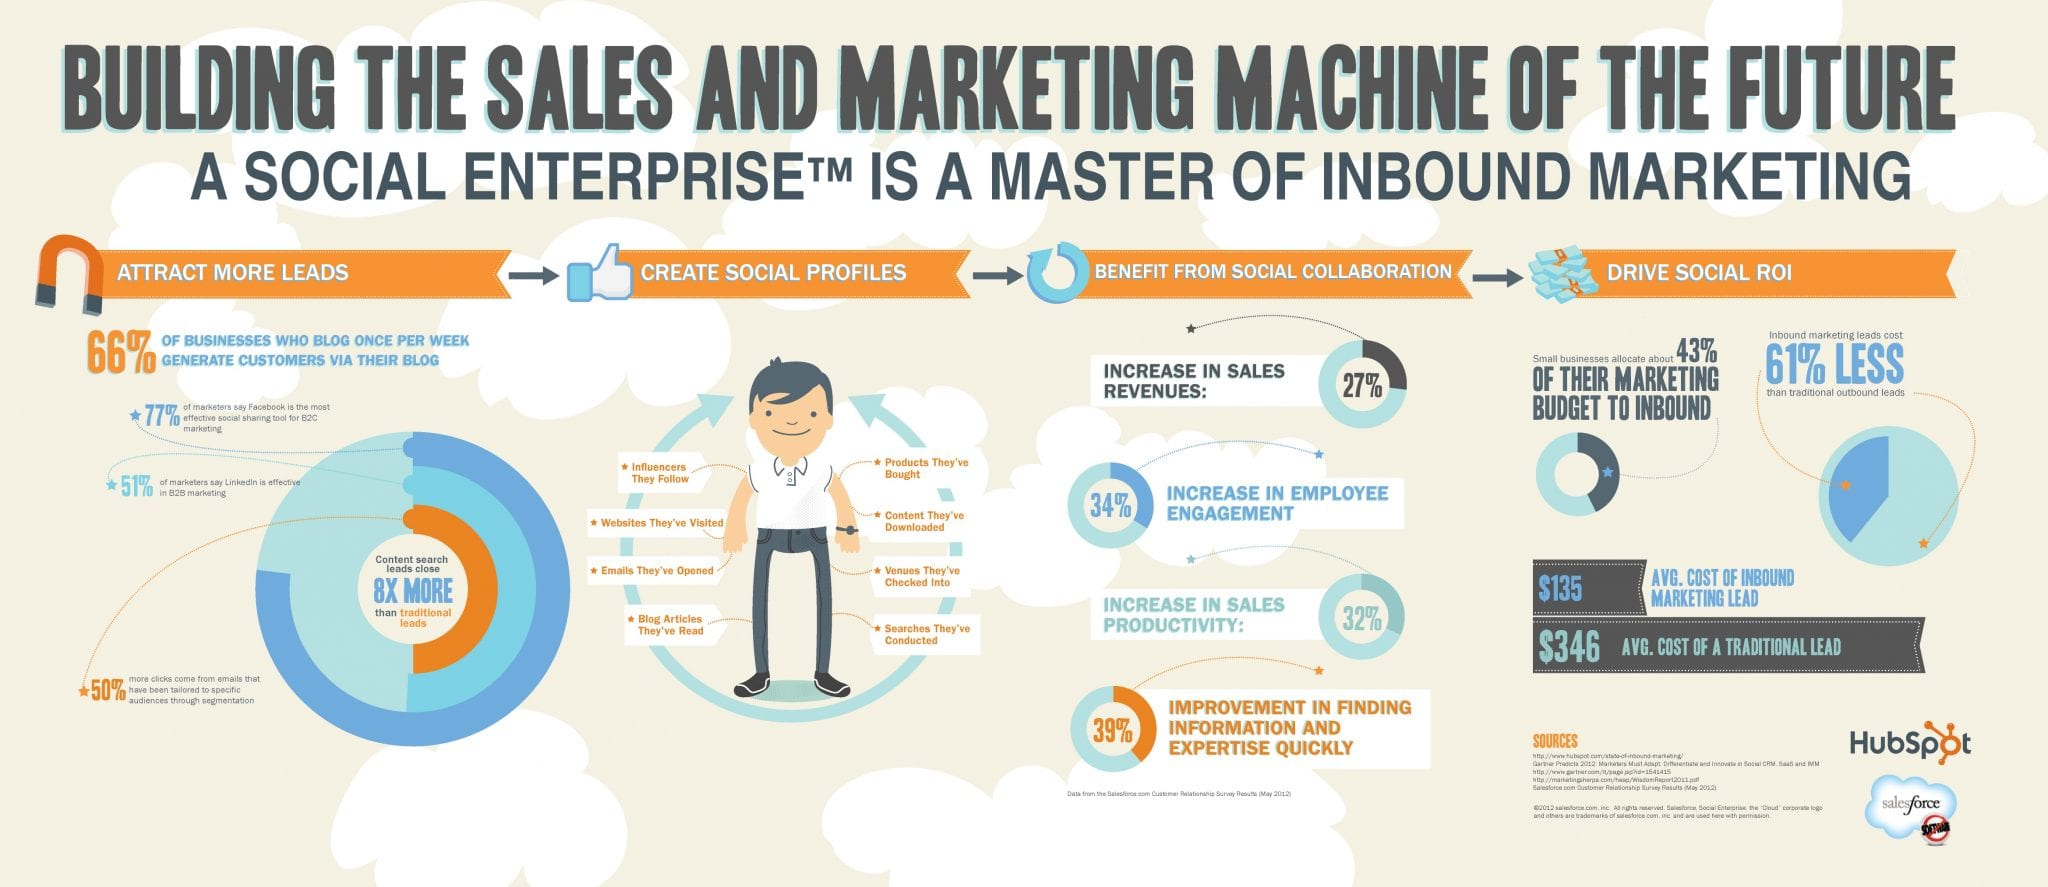 We would discuss aligning sales and marketing strategy, which can help improve digital marketing strategy. This is an marketing infographics created by marketing company in Delhi